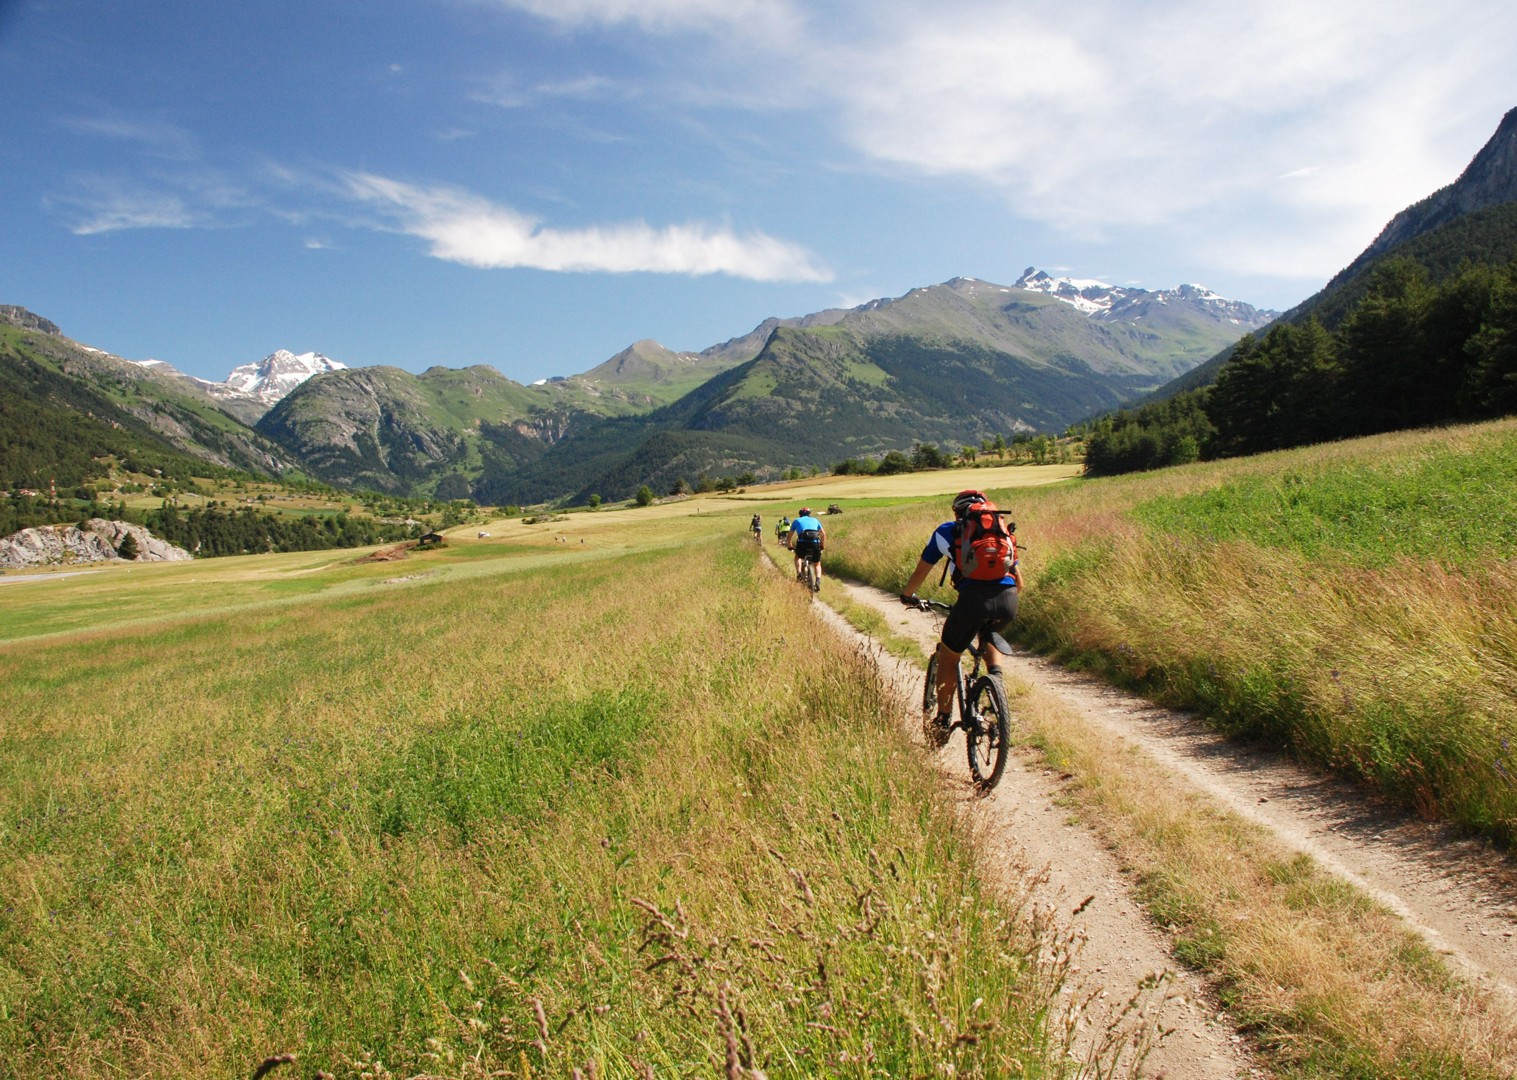 singletrack-mountain-bike-holiday-in-the-alps-alpine-adventure.JPG - Italy and France - Alpine Adventure - Guided Mountain Bike Holiday - Italia Mountain Biking